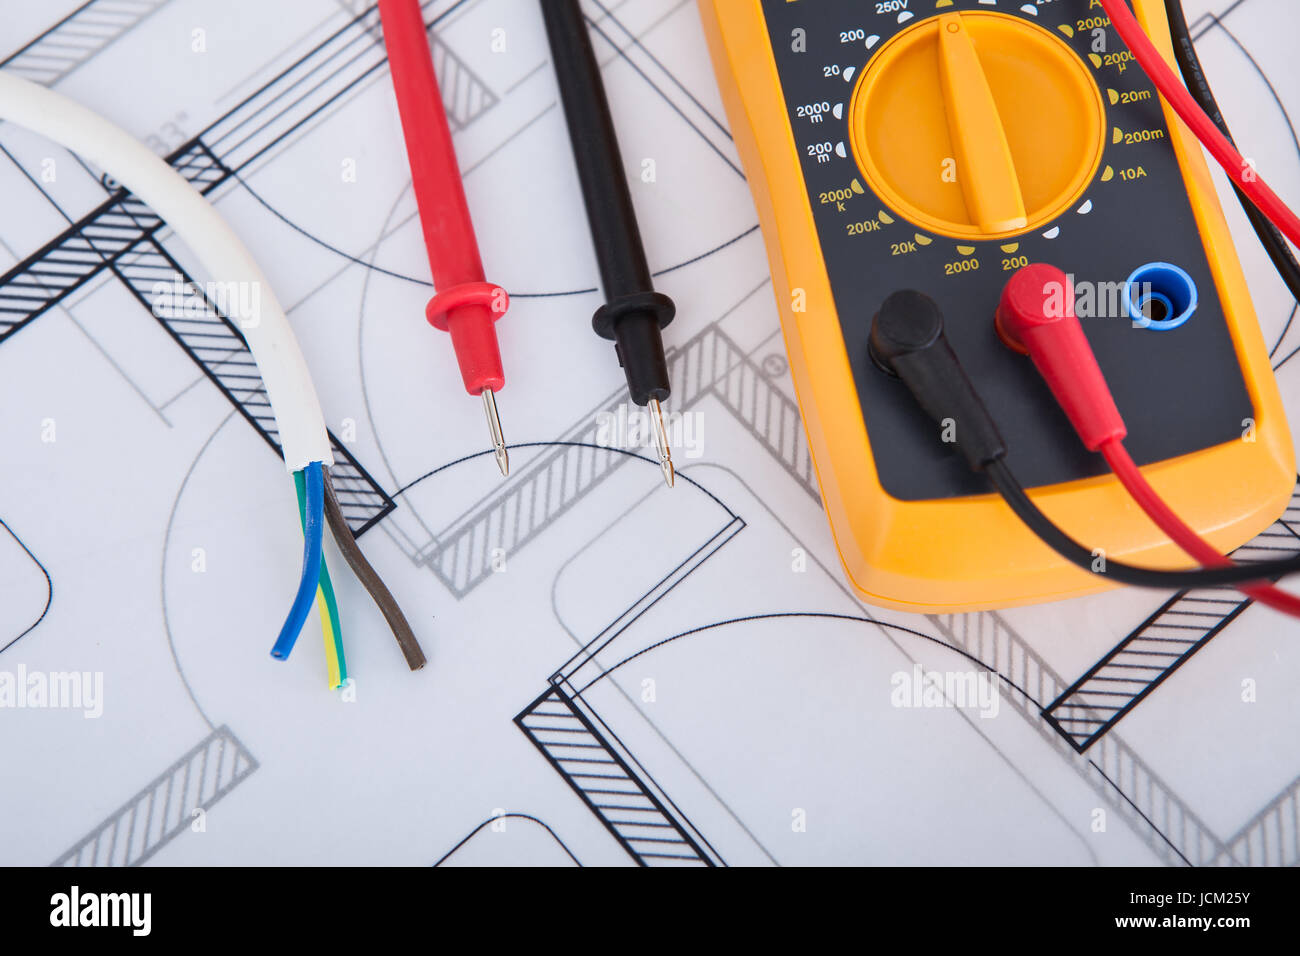 Multimeter Diagram Stock Photos Images Circuit Voltmeter Closeup Of With Wires On Blueprint Image